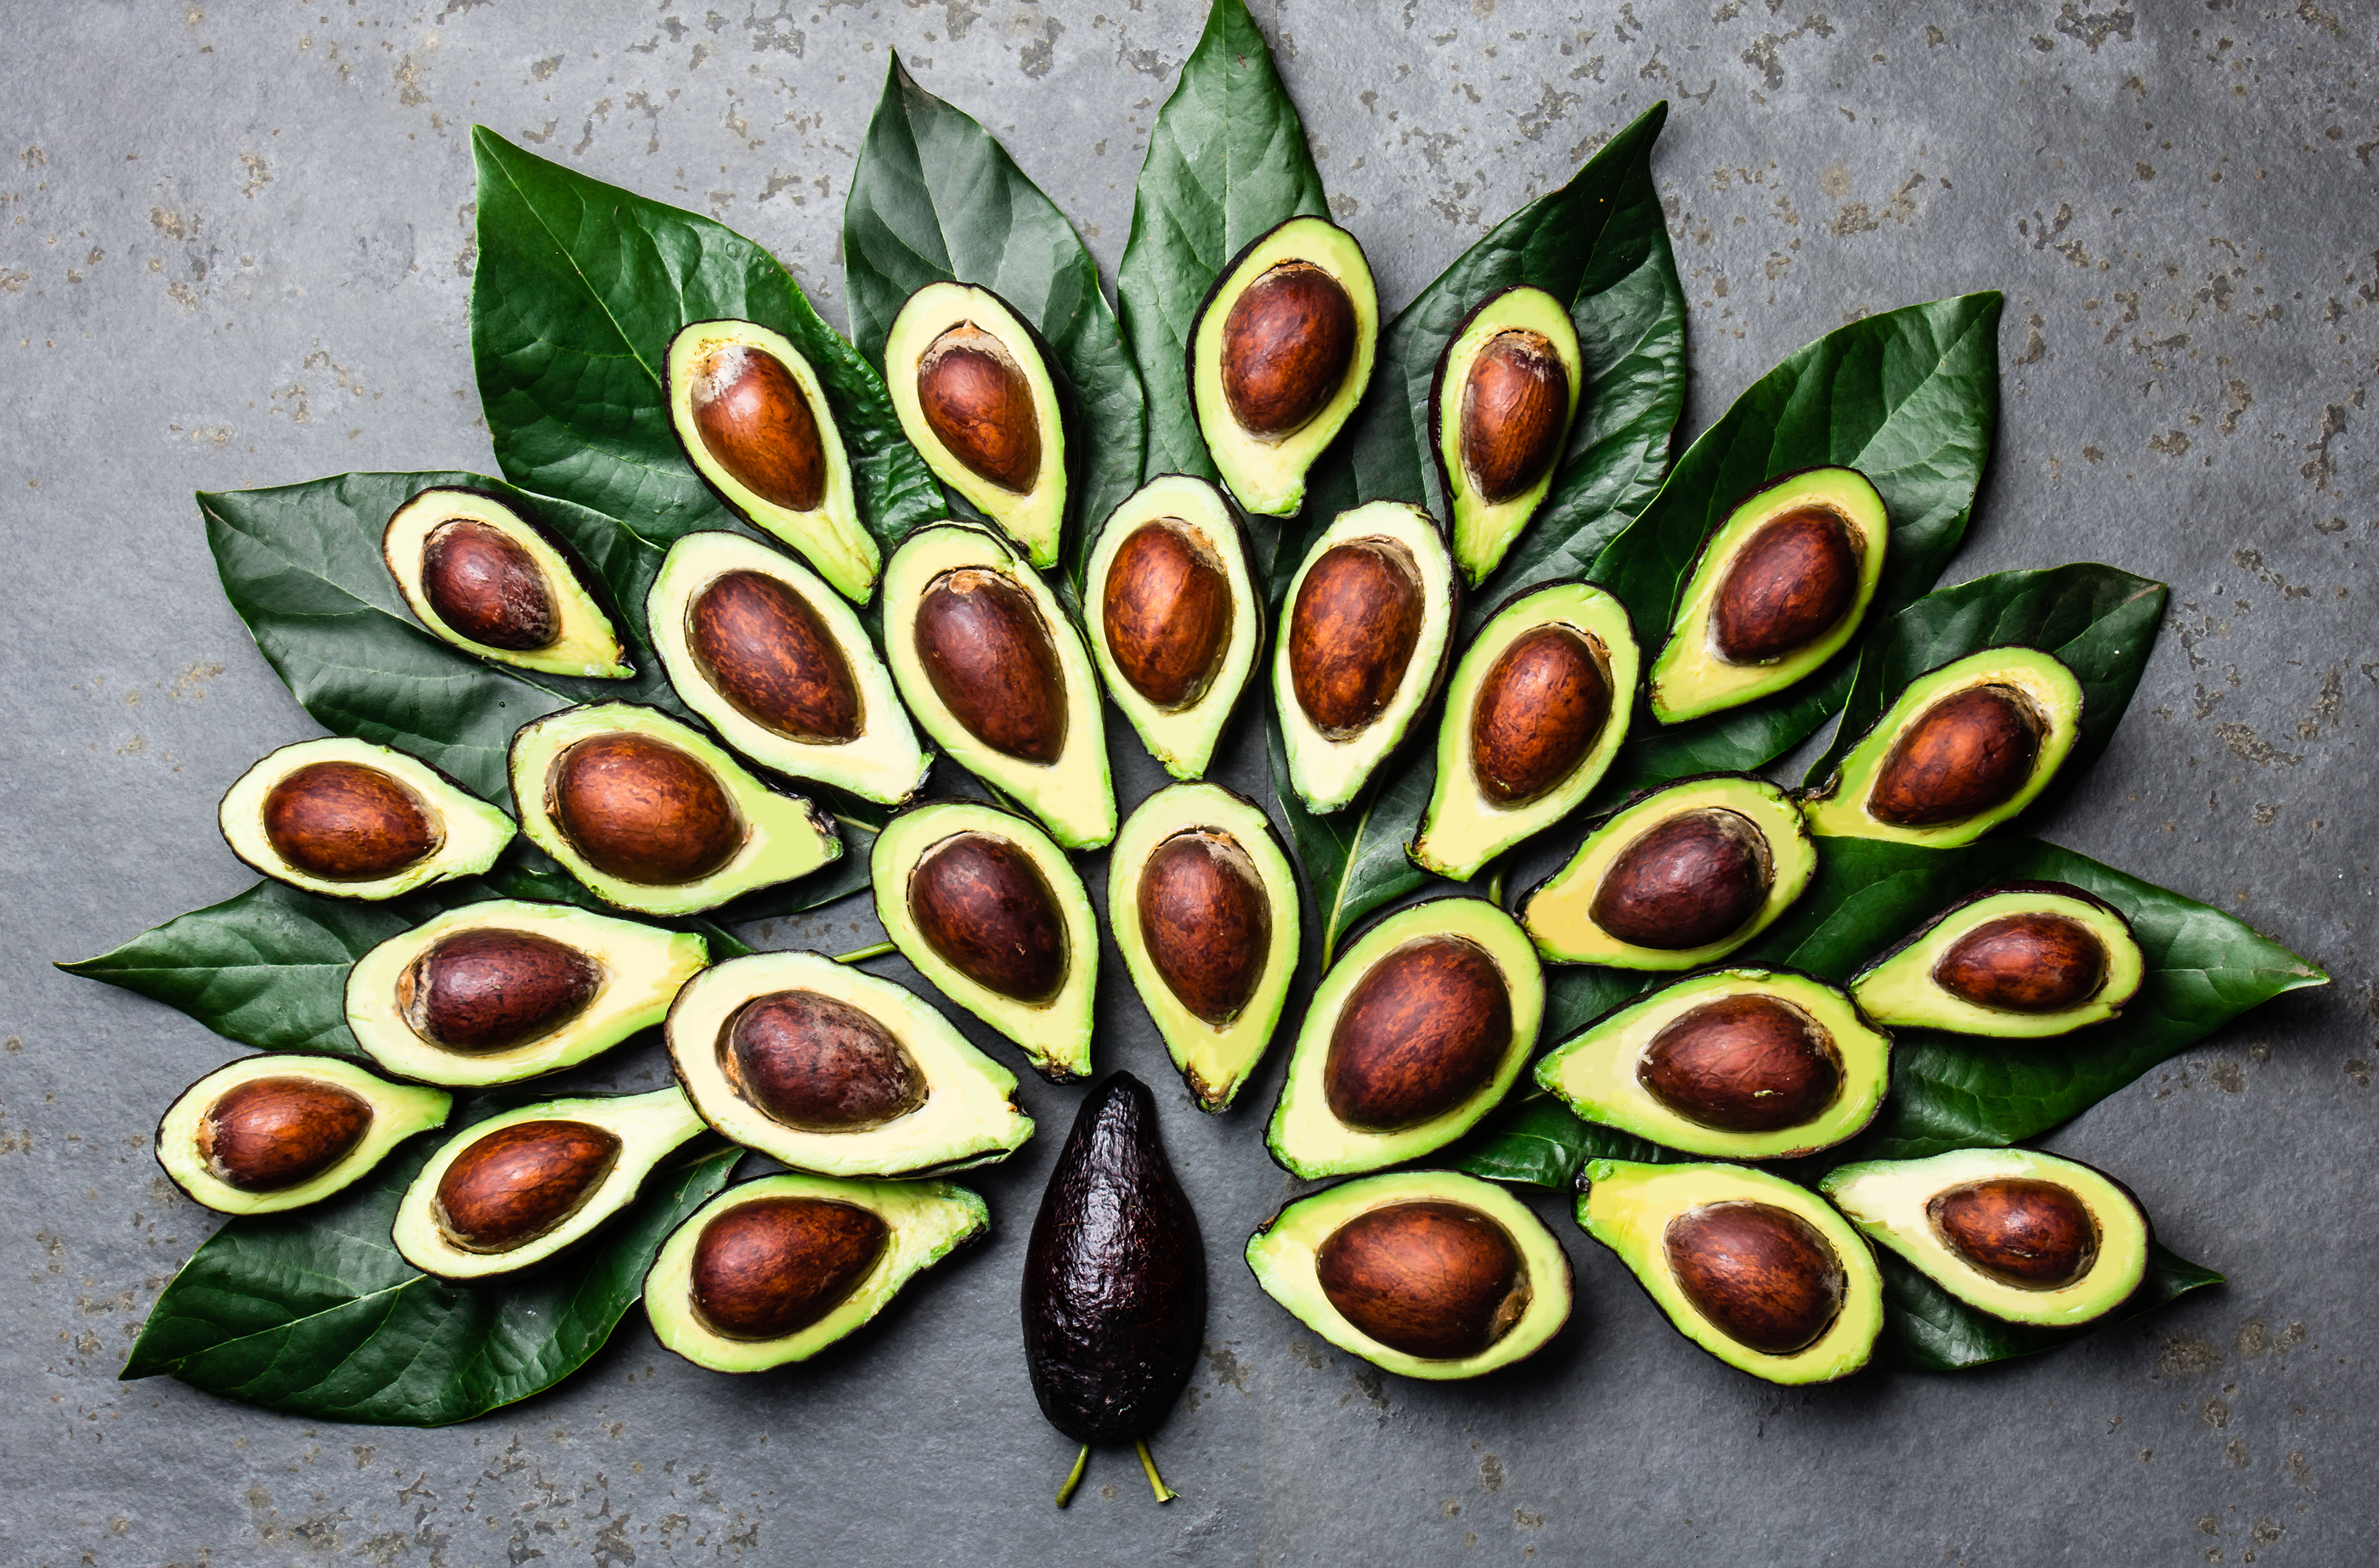 Secrets Of The Avocado